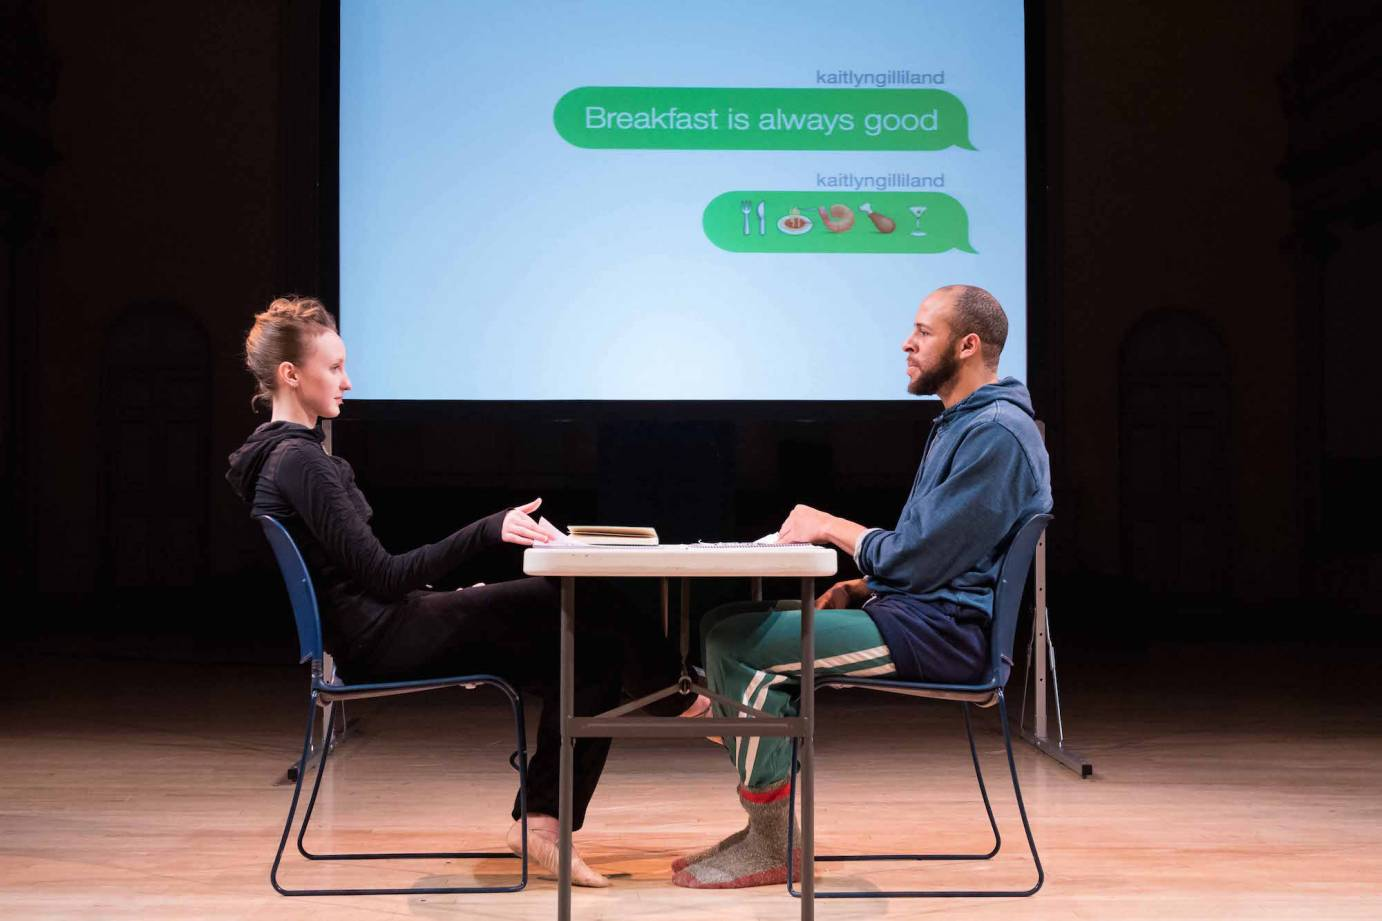 Kaitlyn Gilliland and Will Rawls sitting at a table in #loveyoumeanit with a projection of their text messages in the background.